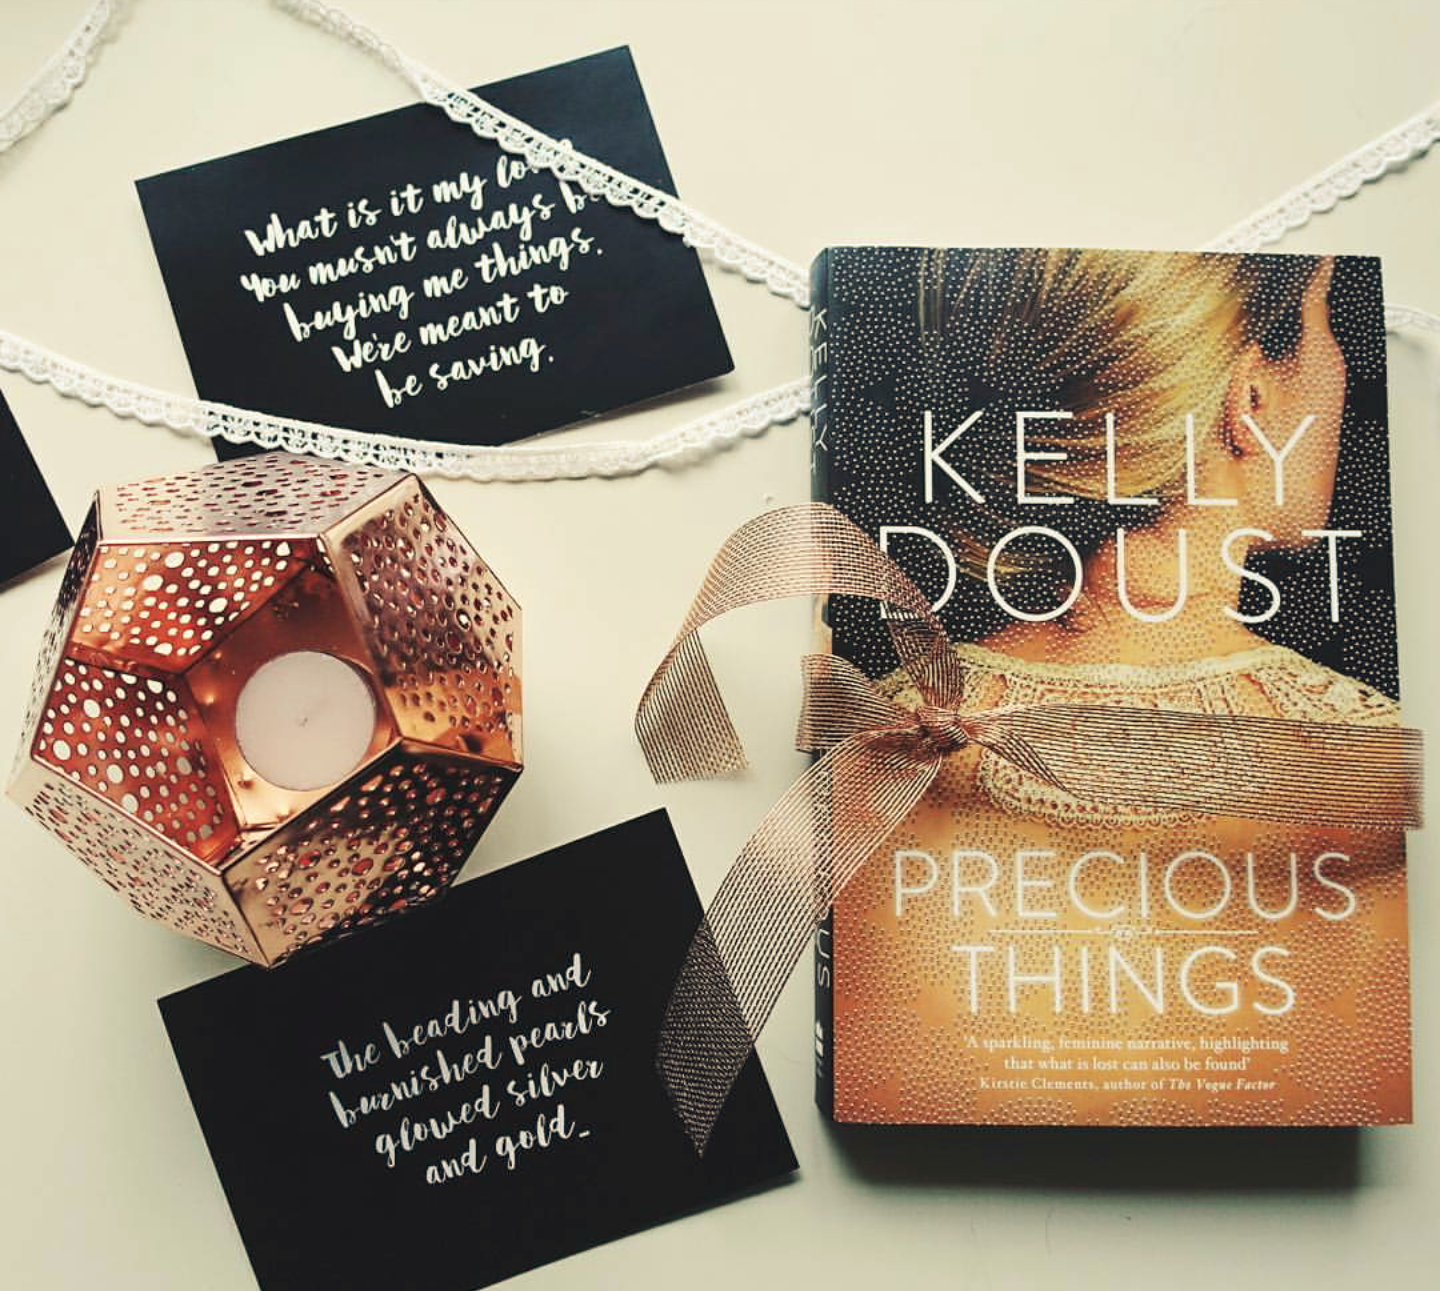 Precious Things by kelly doust